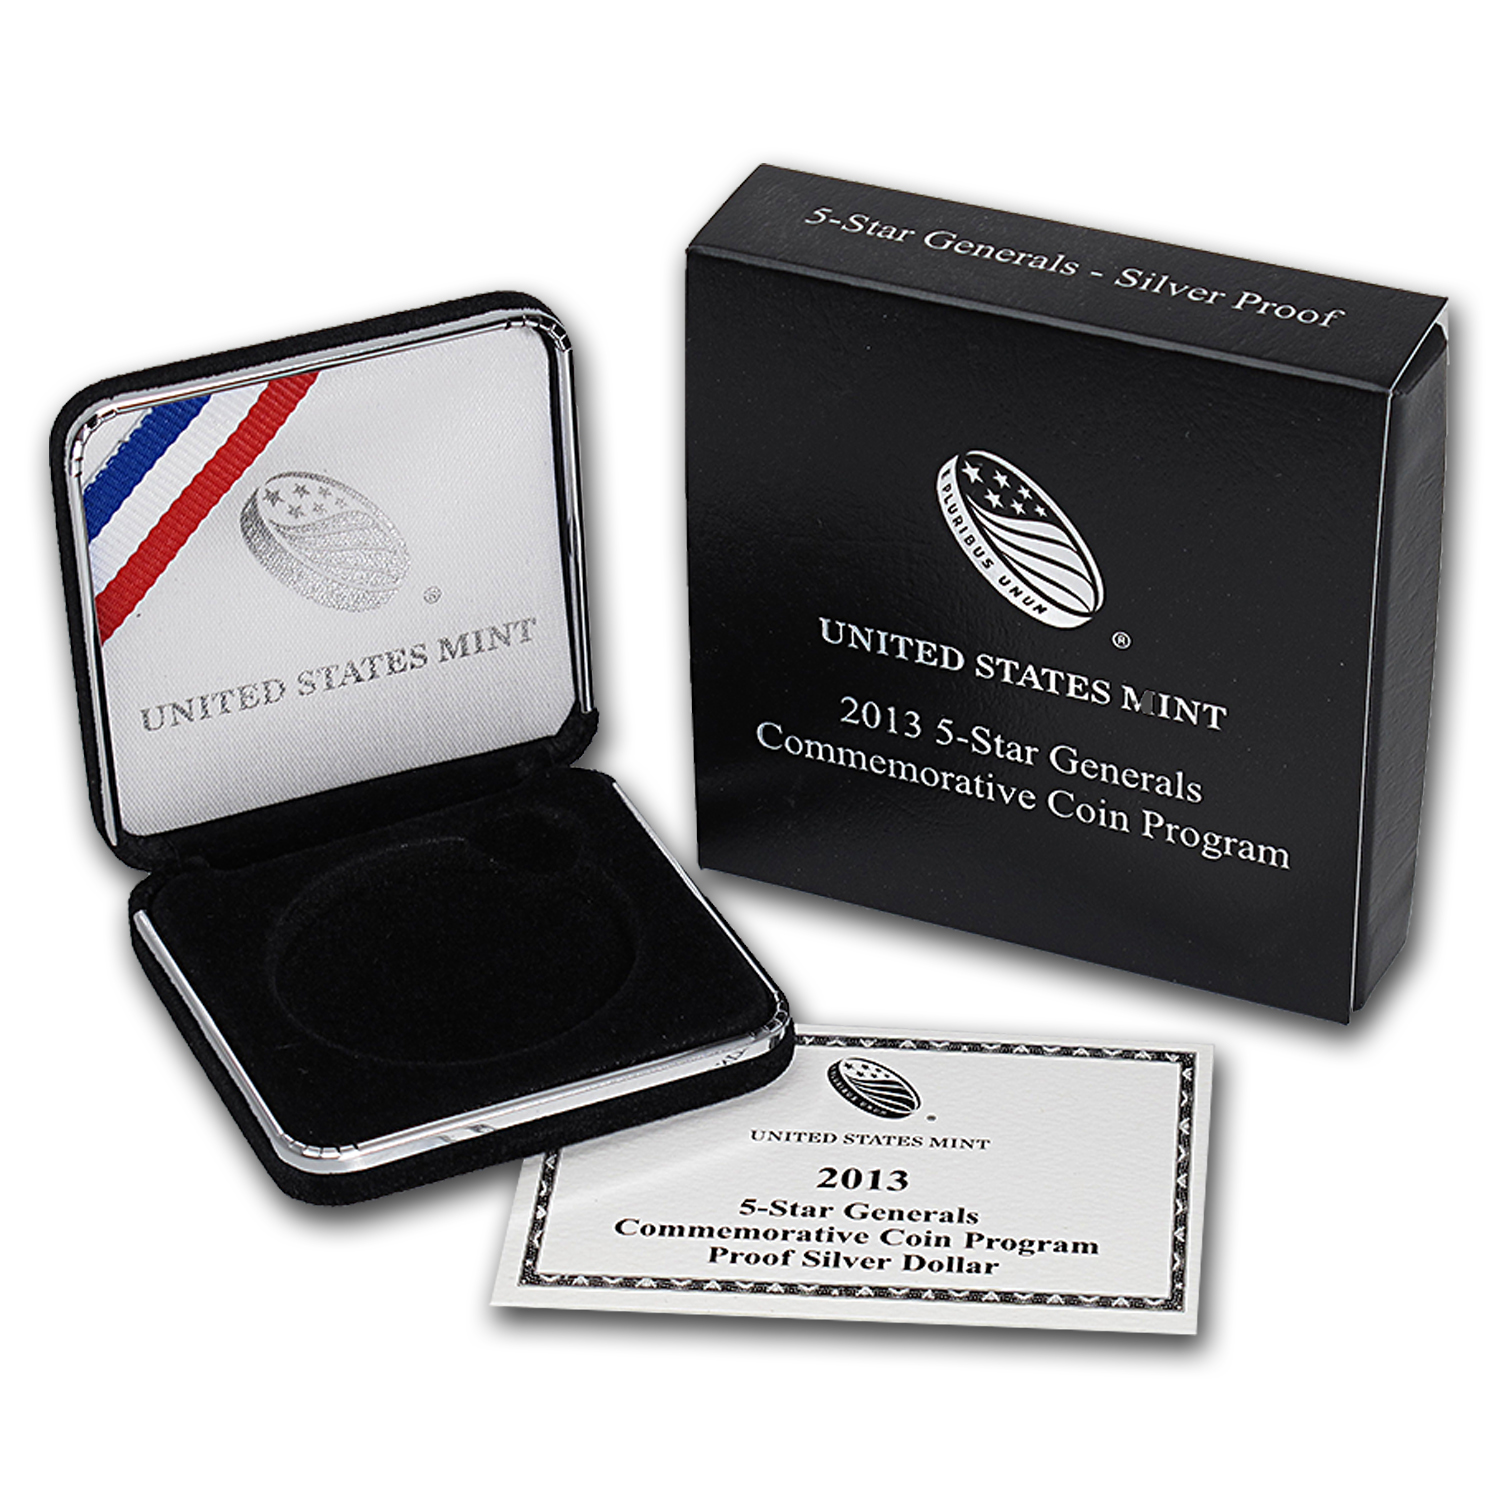 OEM Box & COA - 2013 U.S. Mint 5 Star General Silver Proof Coin